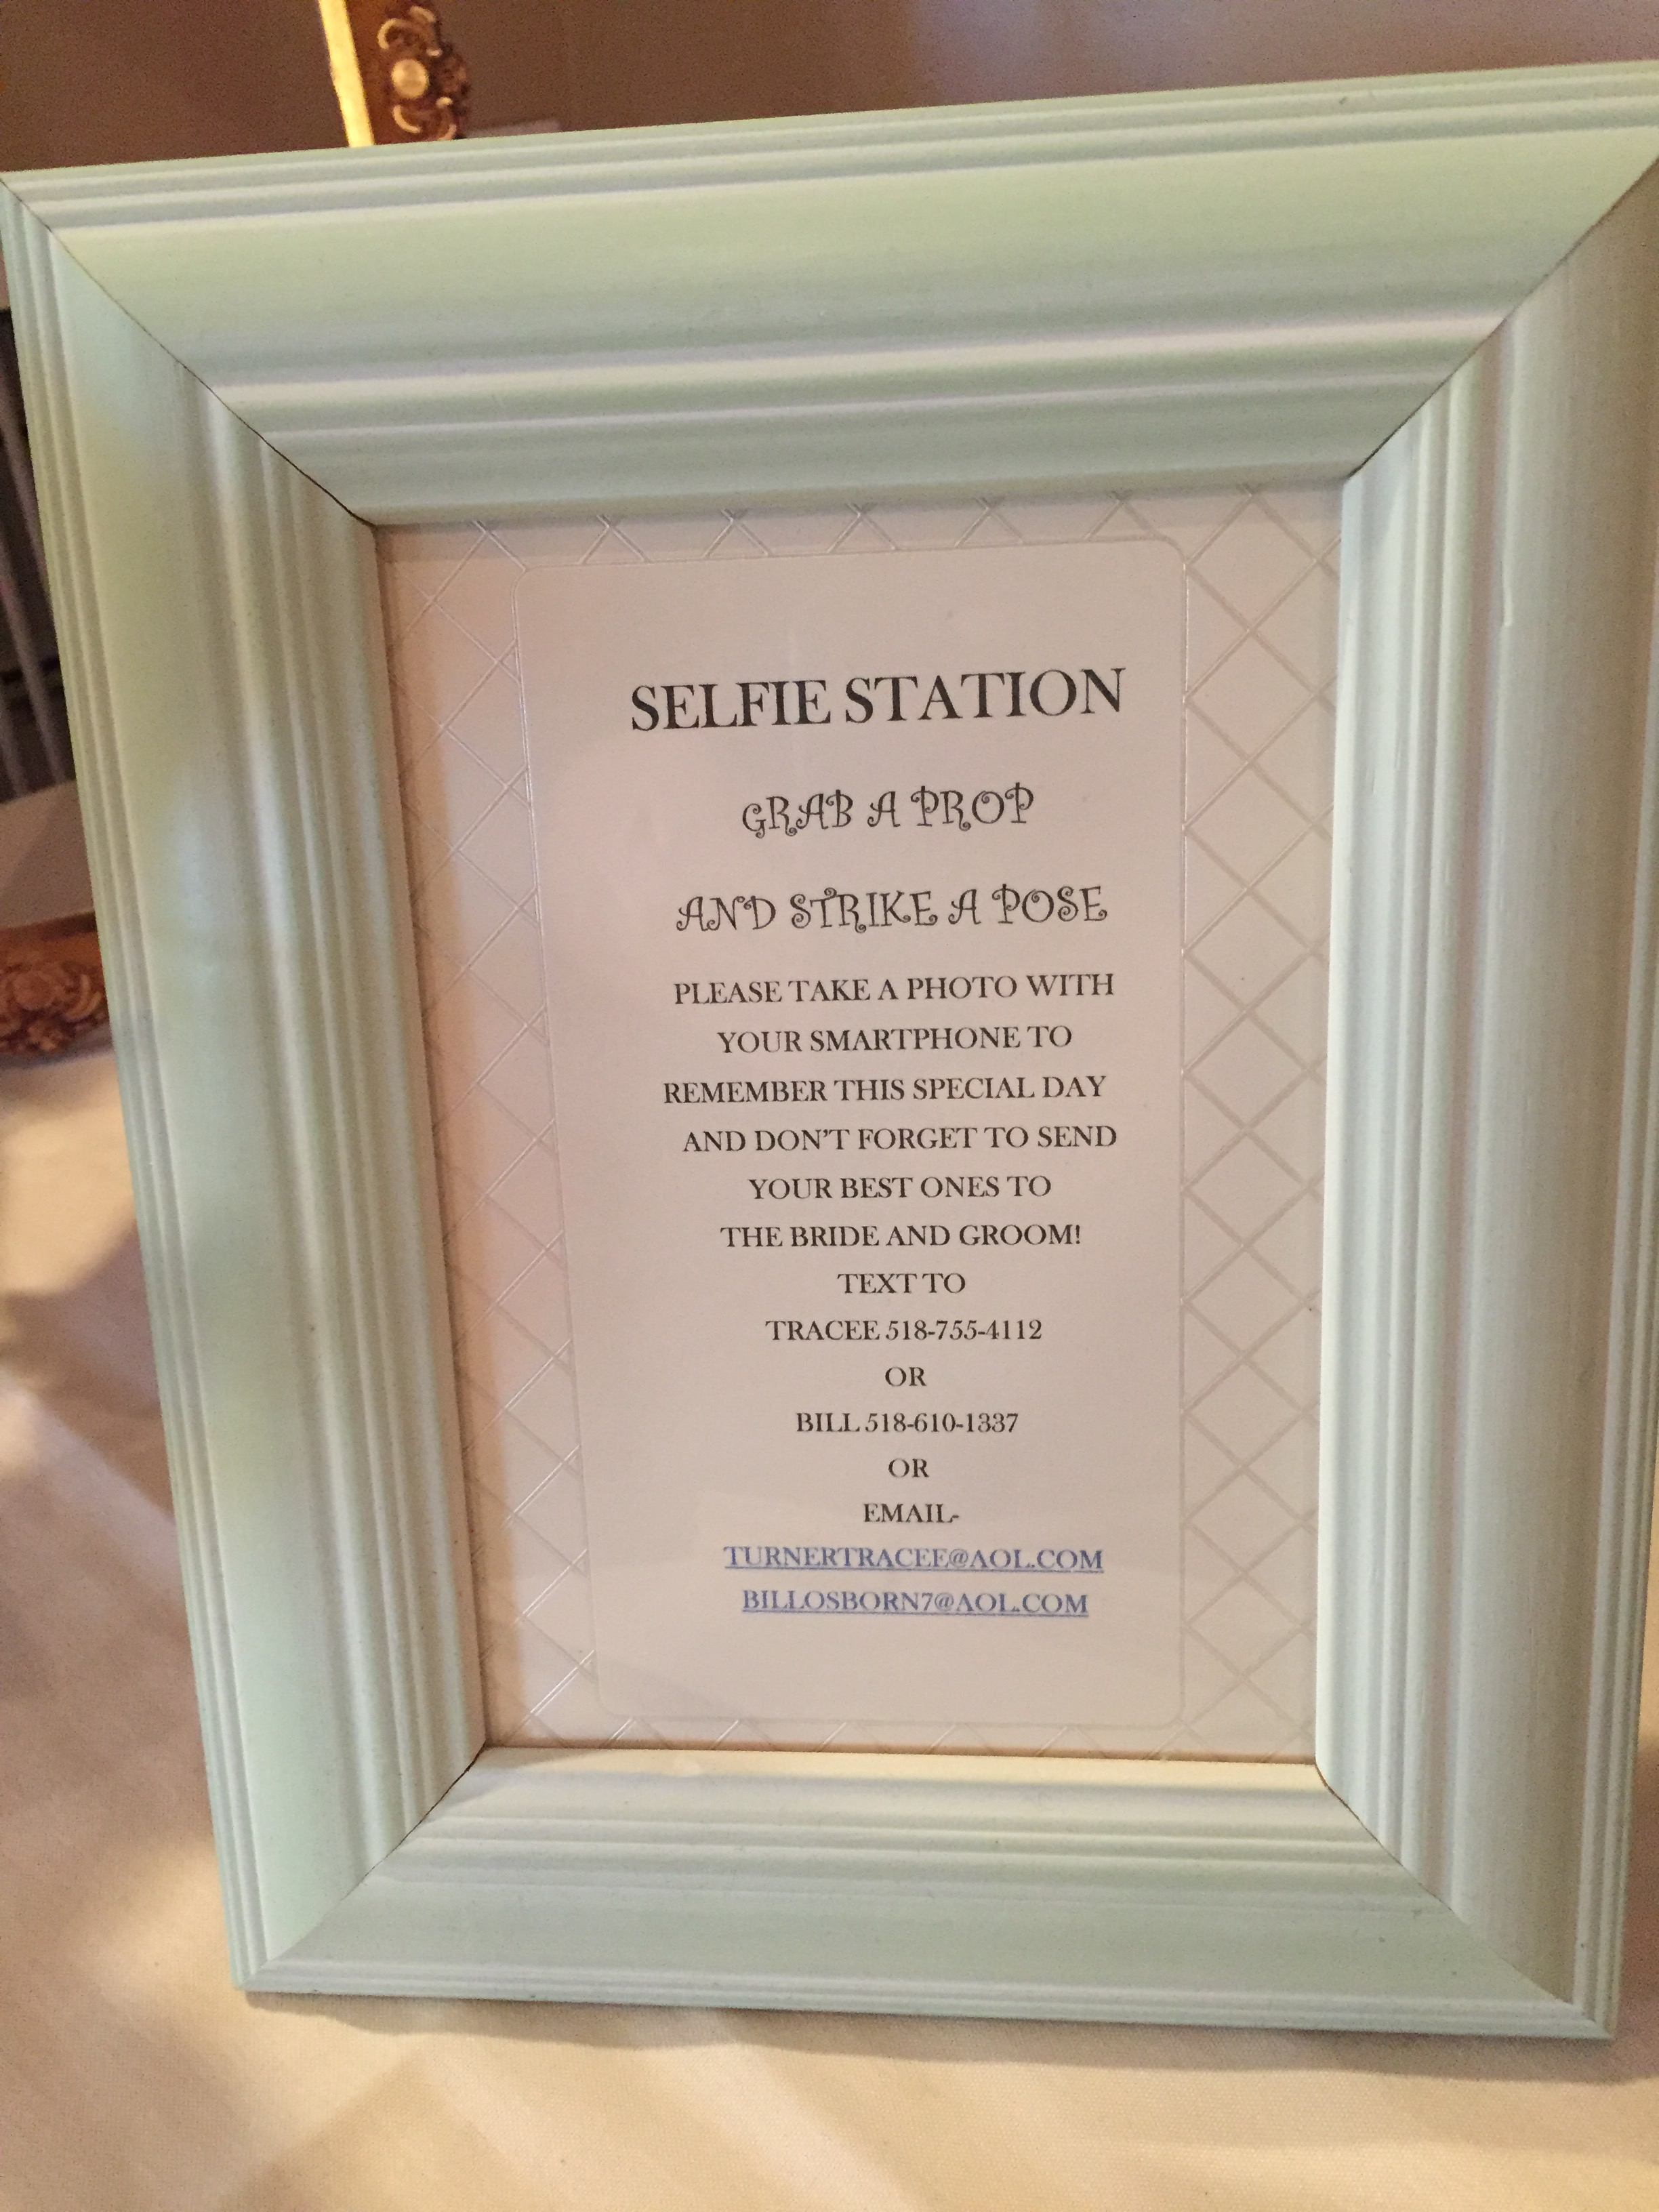 Wedding Selfie Station Sign Albany Dj Sweet 16 Reunion Party Mitzvah Of Troy Schenectady Saratoga Lake George